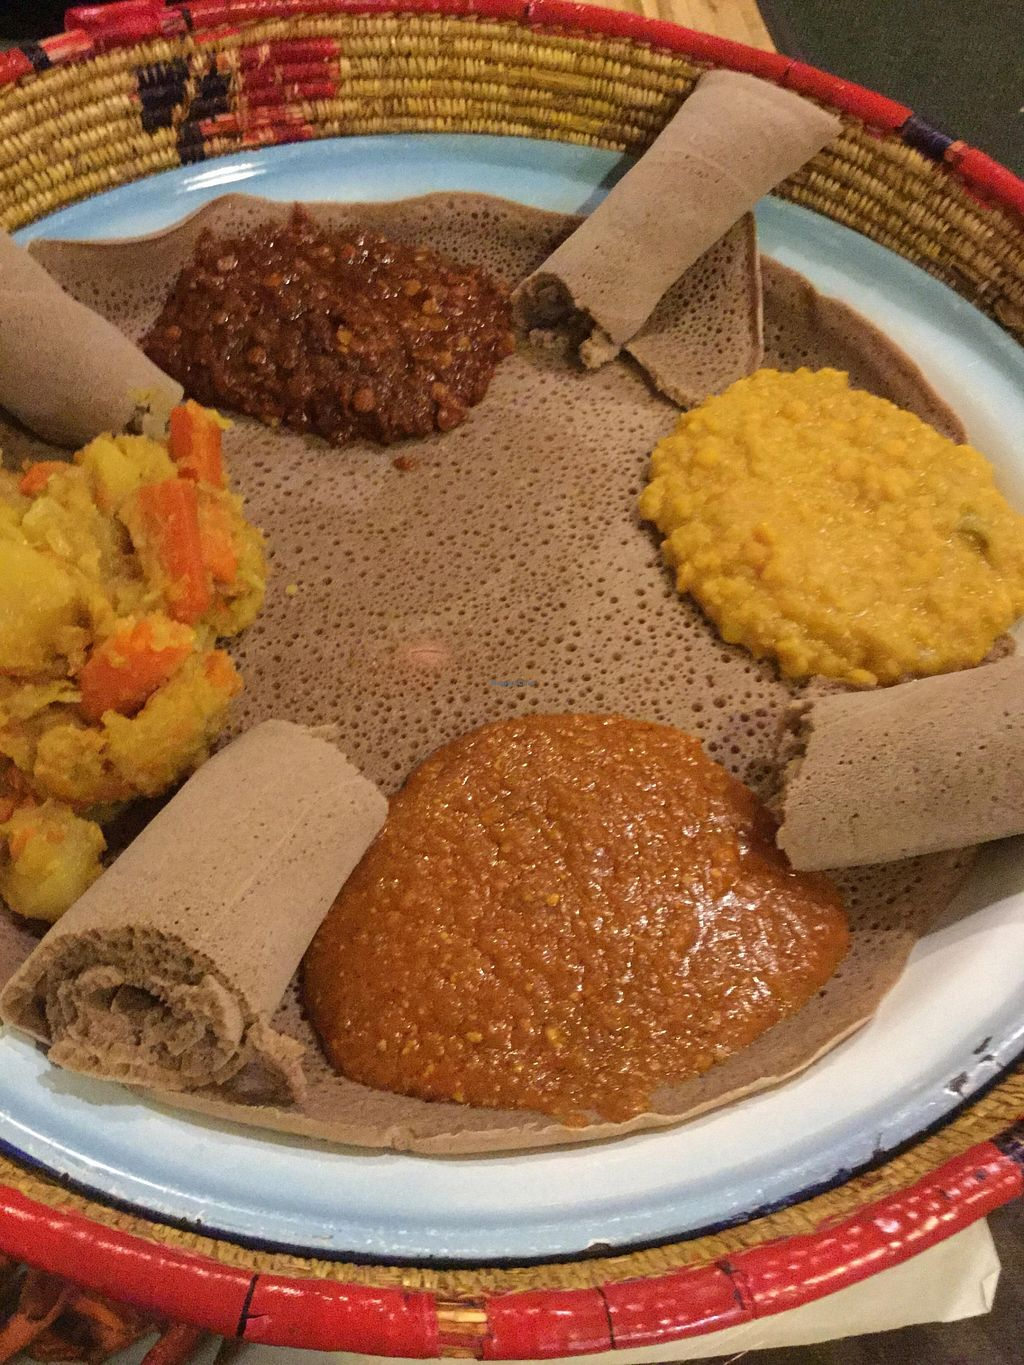 """Photo of Queen of Sheba  by <a href=""""/members/profile/J%20and%20J"""">J and J</a> <br/>Vegetarian combo platter: all vegan <br/> January 29, 2016  - <a href='/contact/abuse/image/58460/134144'>Report</a>"""